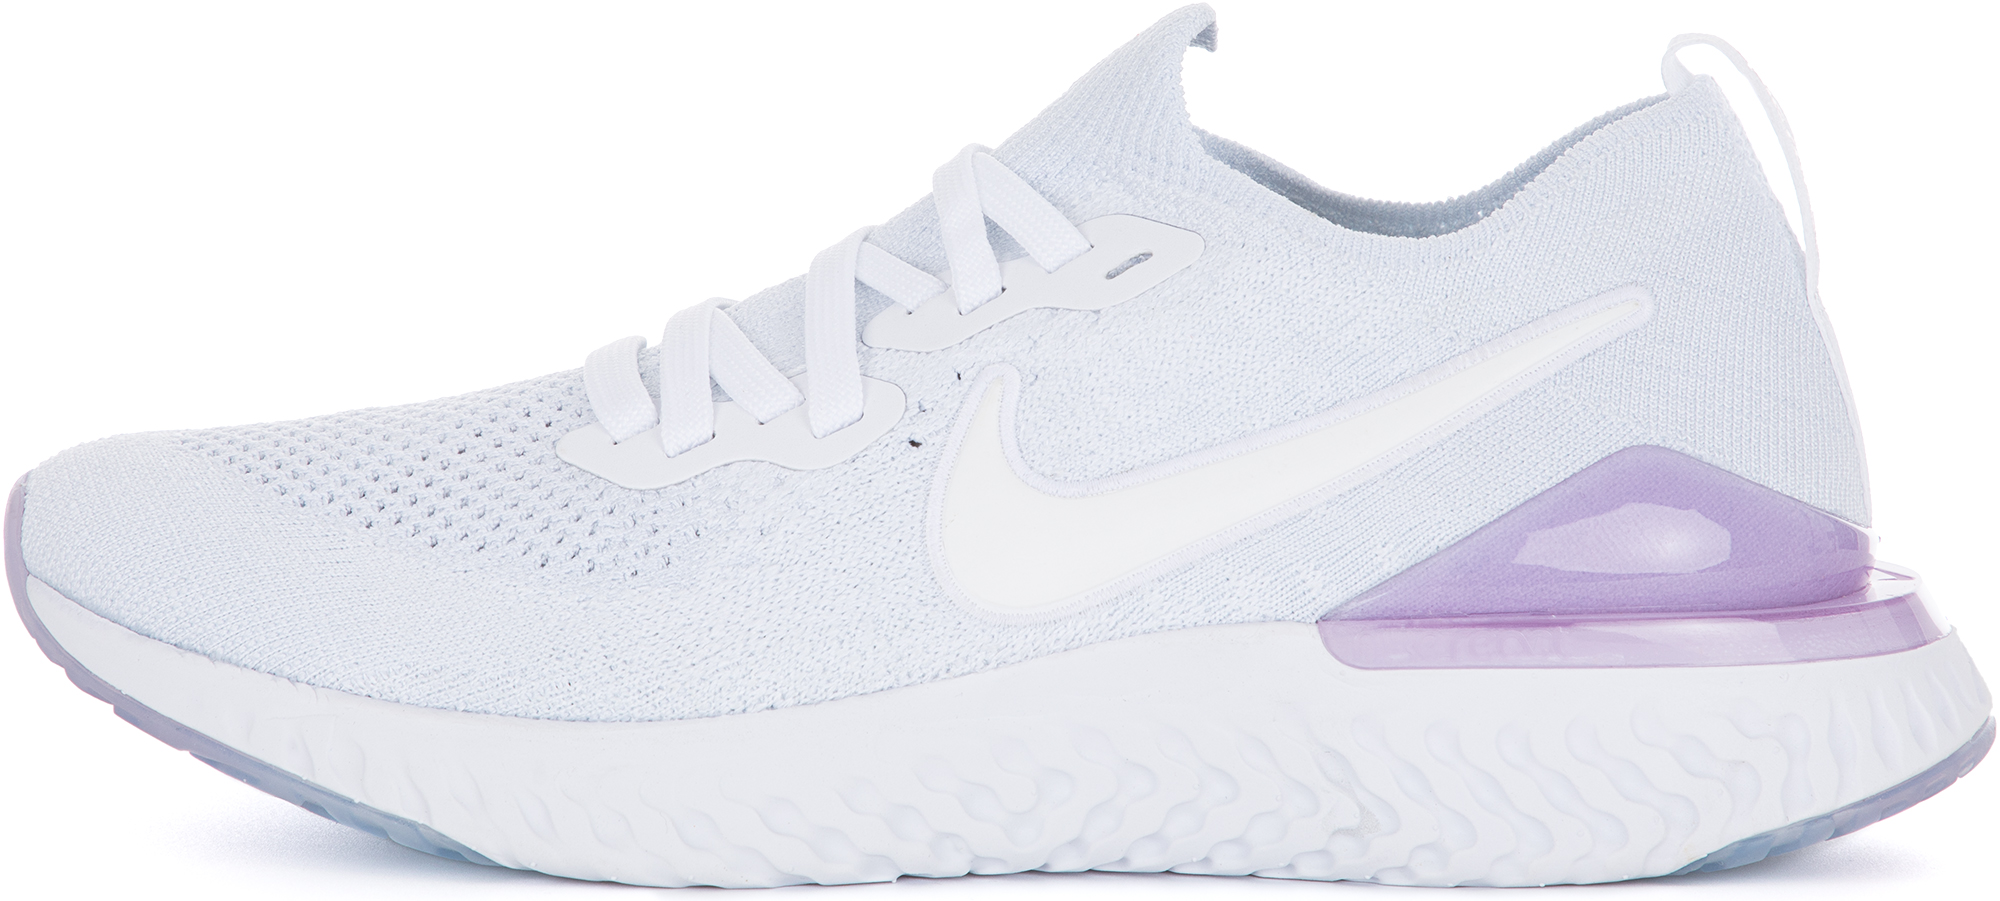 Nike Кроссовки женские Nike Epic React Flyknit 2, размер 39,5